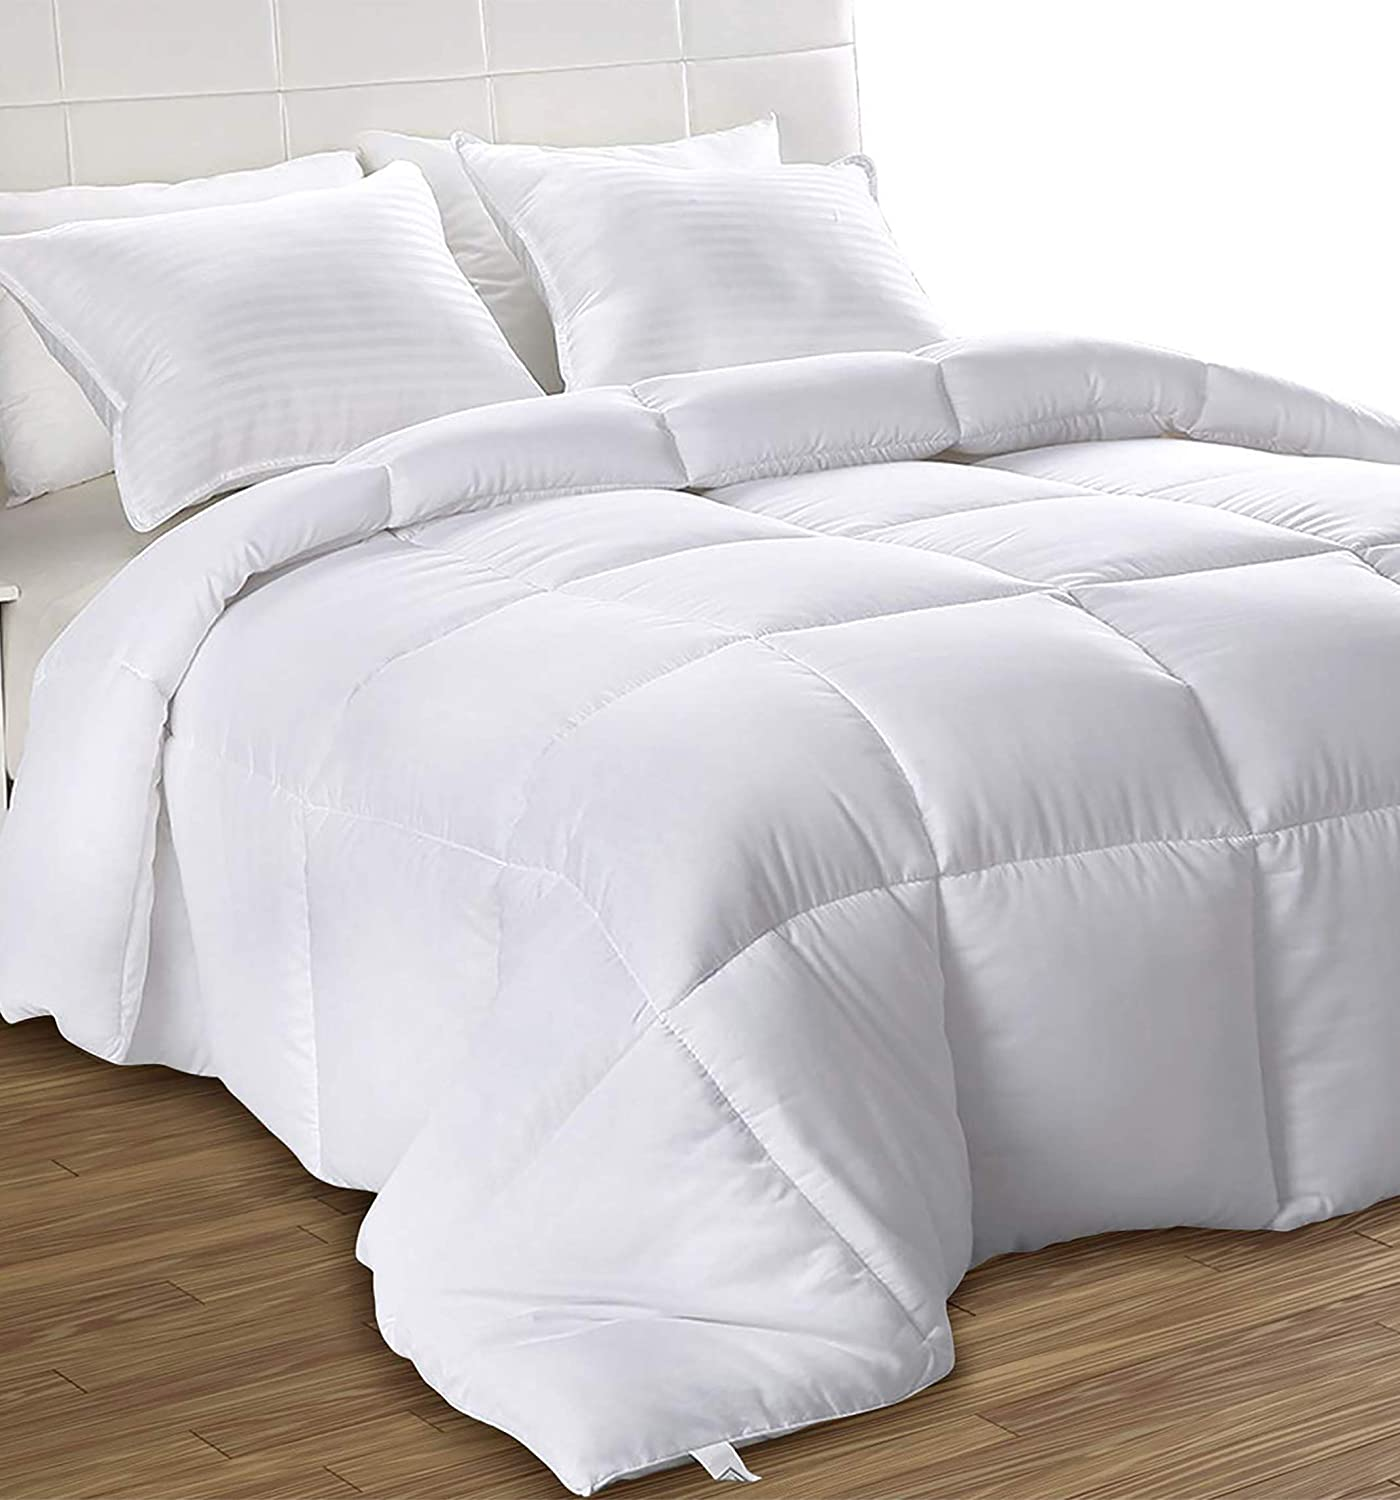 Utopia Max 61% OFF Bedding All Season 250 GSM Ultra Comforter Soft Al - outlet Down